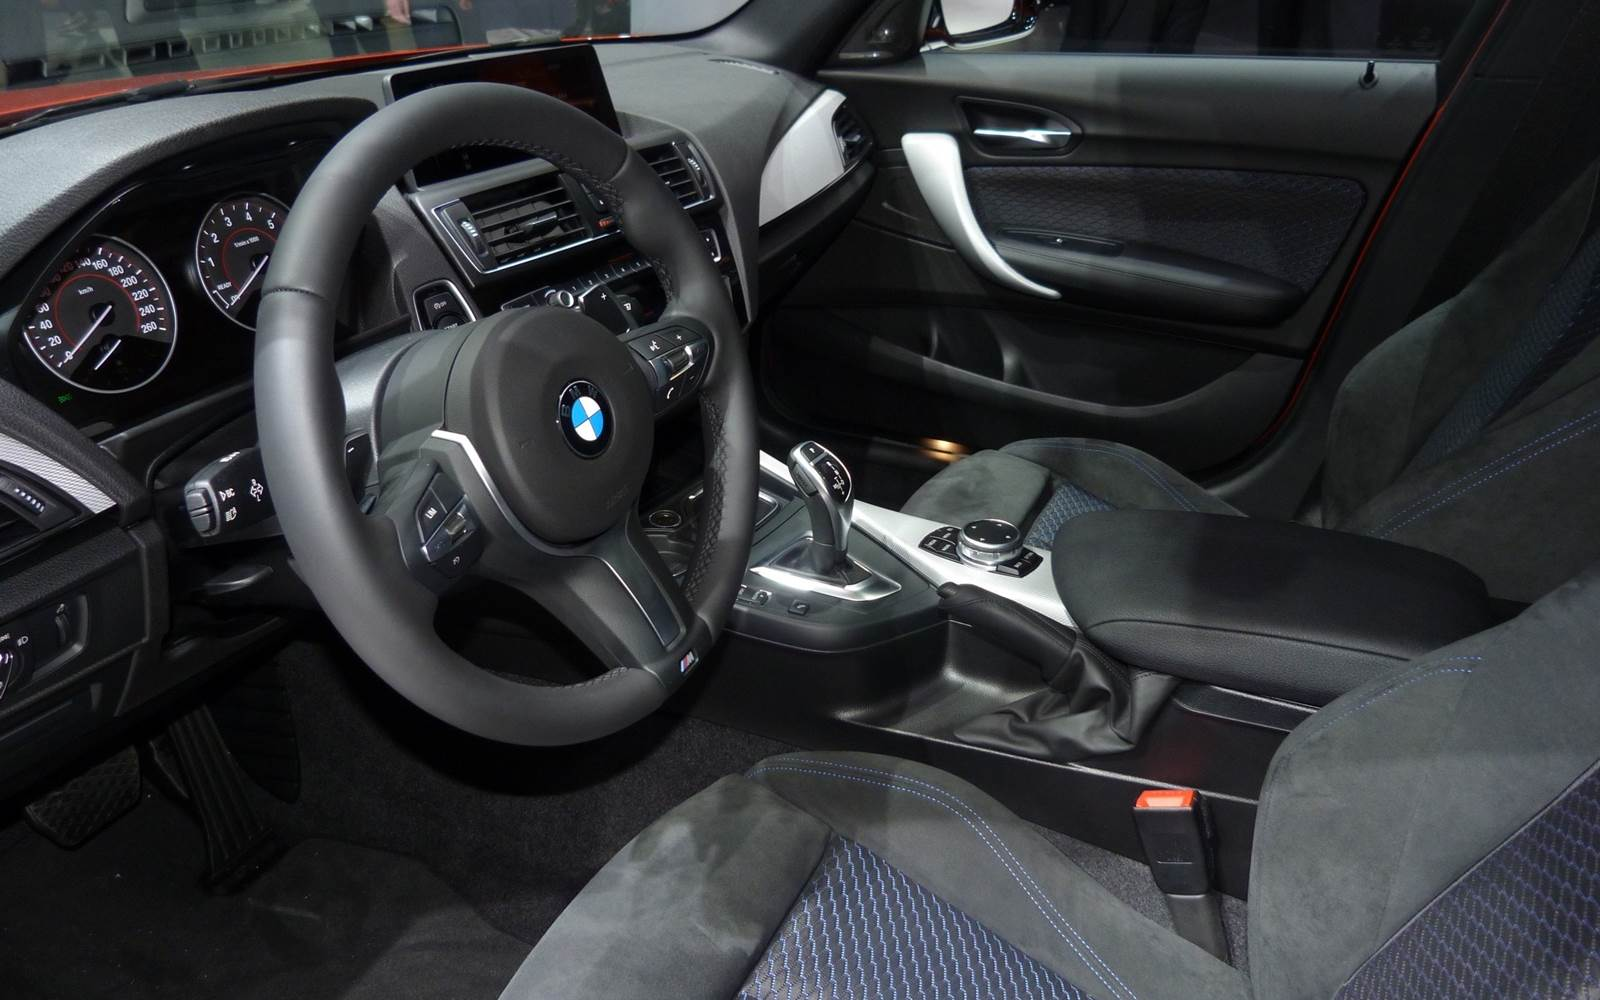 BMW Série 1 2015 Active Flex - interior